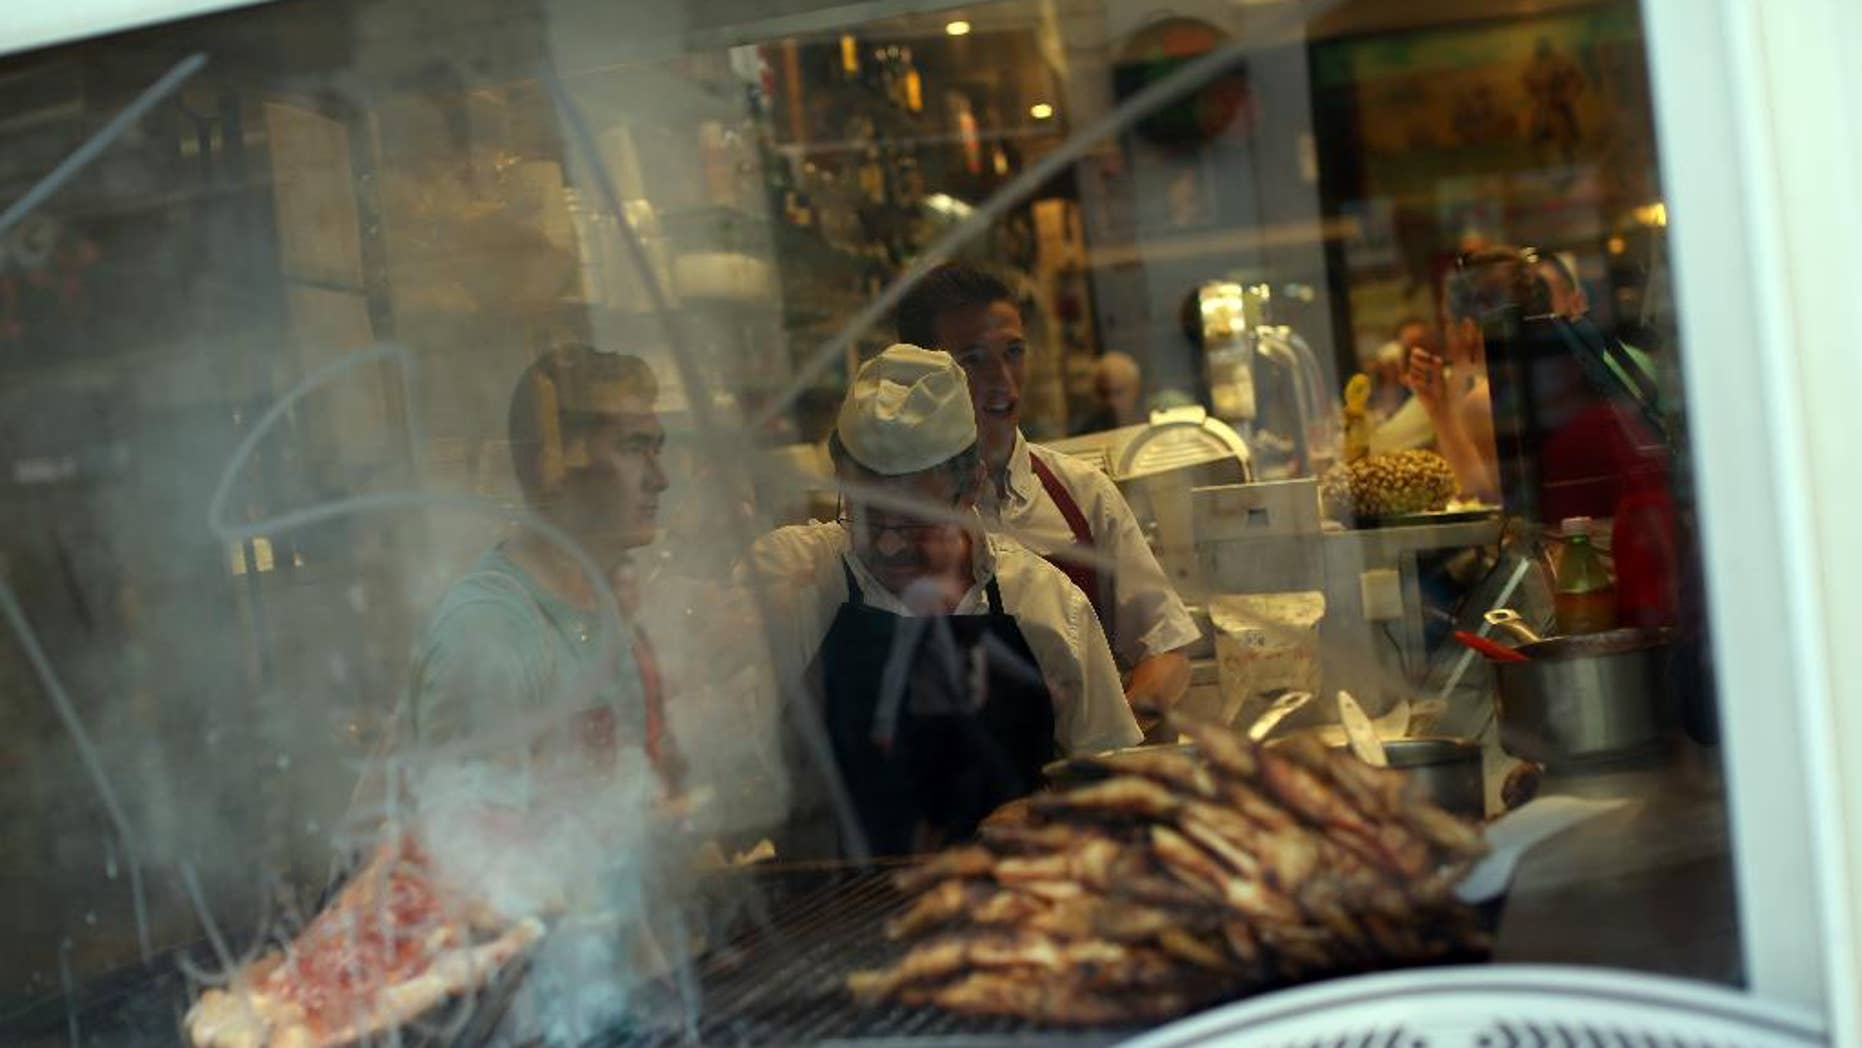 """A man grills meat in a barbecue of a Portuguese traditional food restaurant in Lisbon, Thursday, May 21, 2015. European Central Bank head Mario Draghi said that """"growth is too low everywhere"""" in Europe despite a modest recovery, during an ECB's conference on inflation and unemployment in Sintra, Portugal. (AP Photo/Francisco Seco)"""